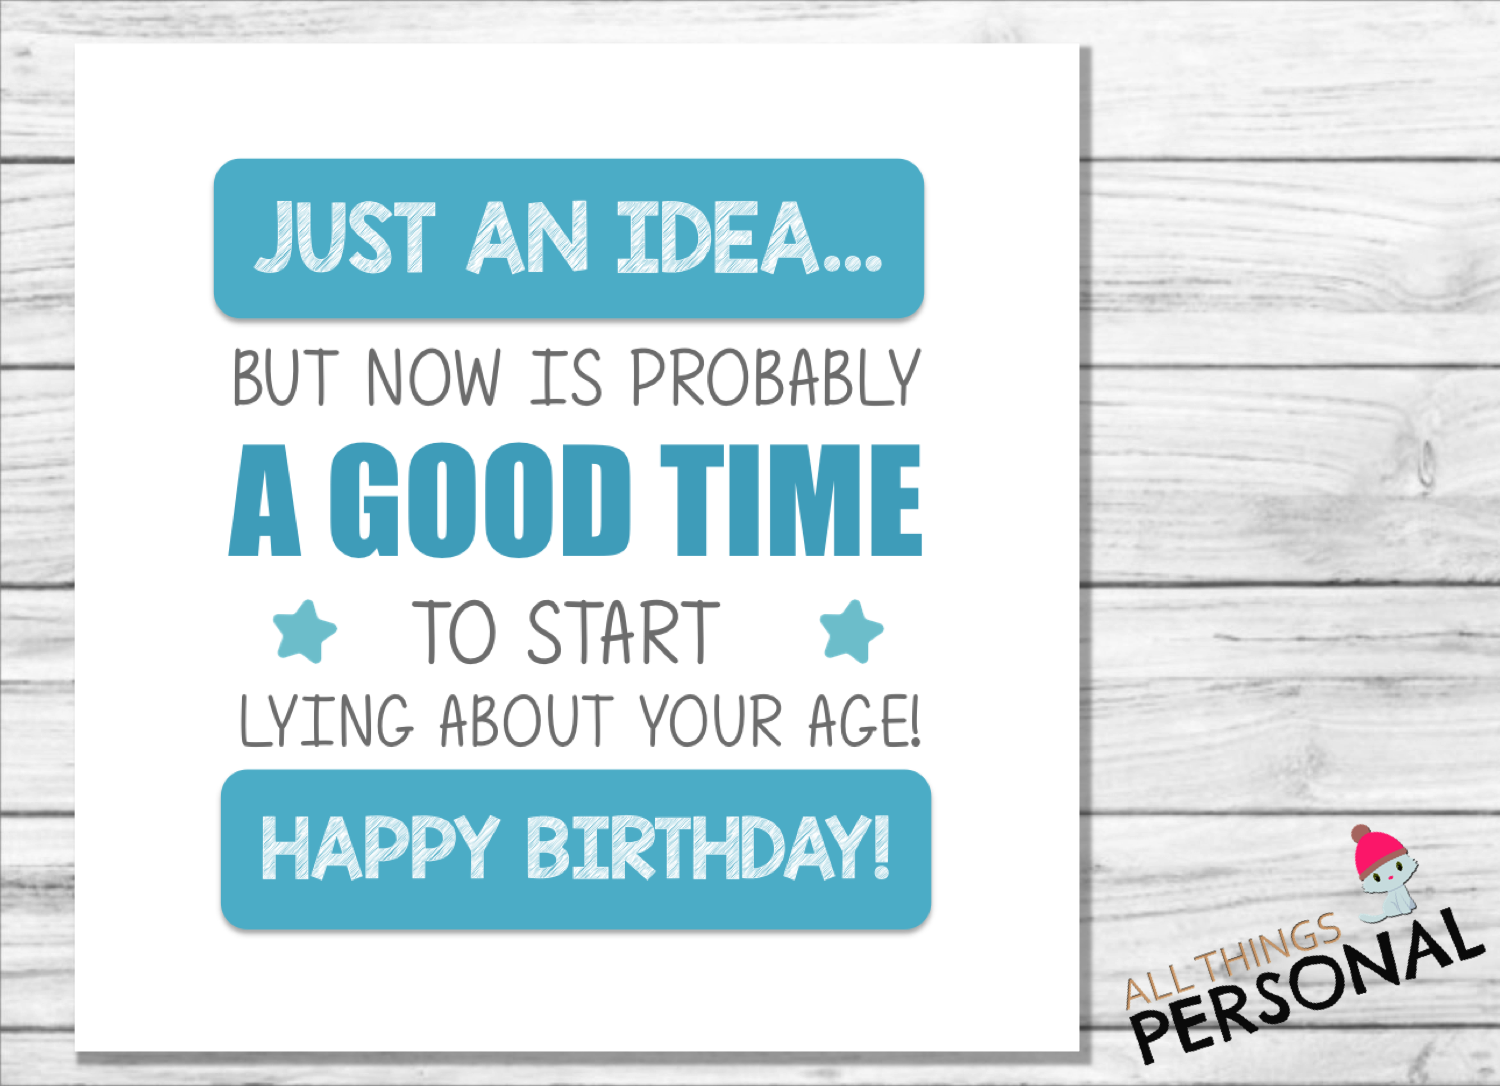 Greeting Cards Funny Happy Birthday Card Perfect For Men Or Women Blank Inside To Add Your Own Personal Greeting Rude Age Joke Perfect For Mum Dad 40th 50th 60th 70th